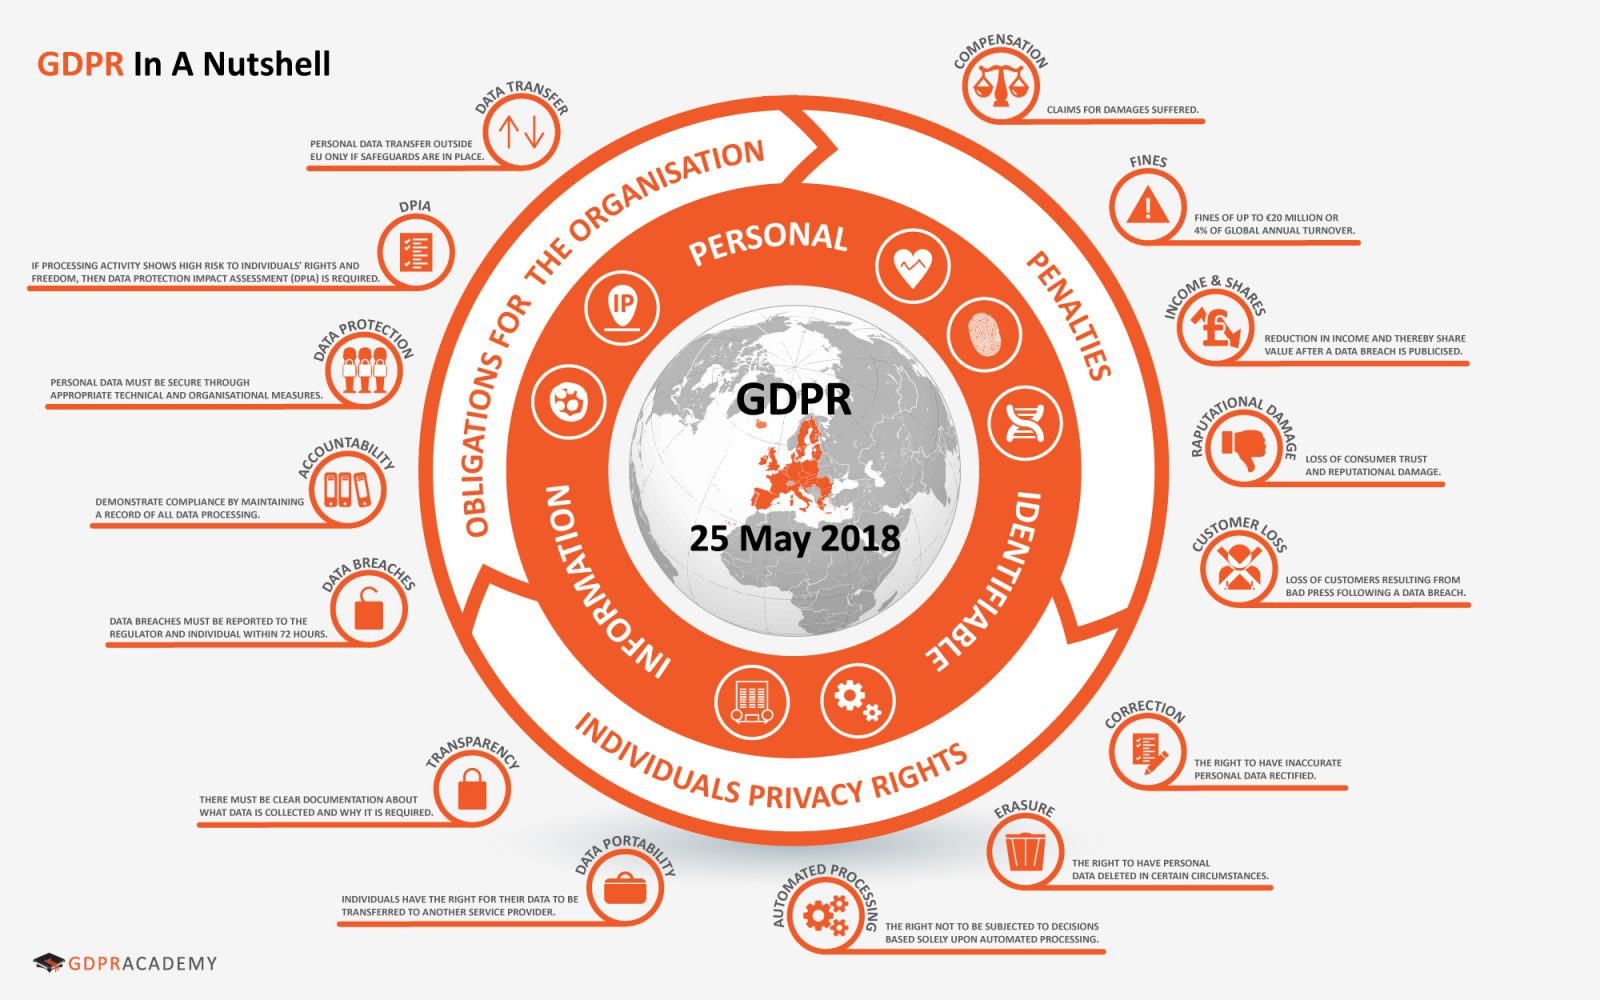 GDPR In A Nutshell - GDPR Training is the Foundation of Compliance